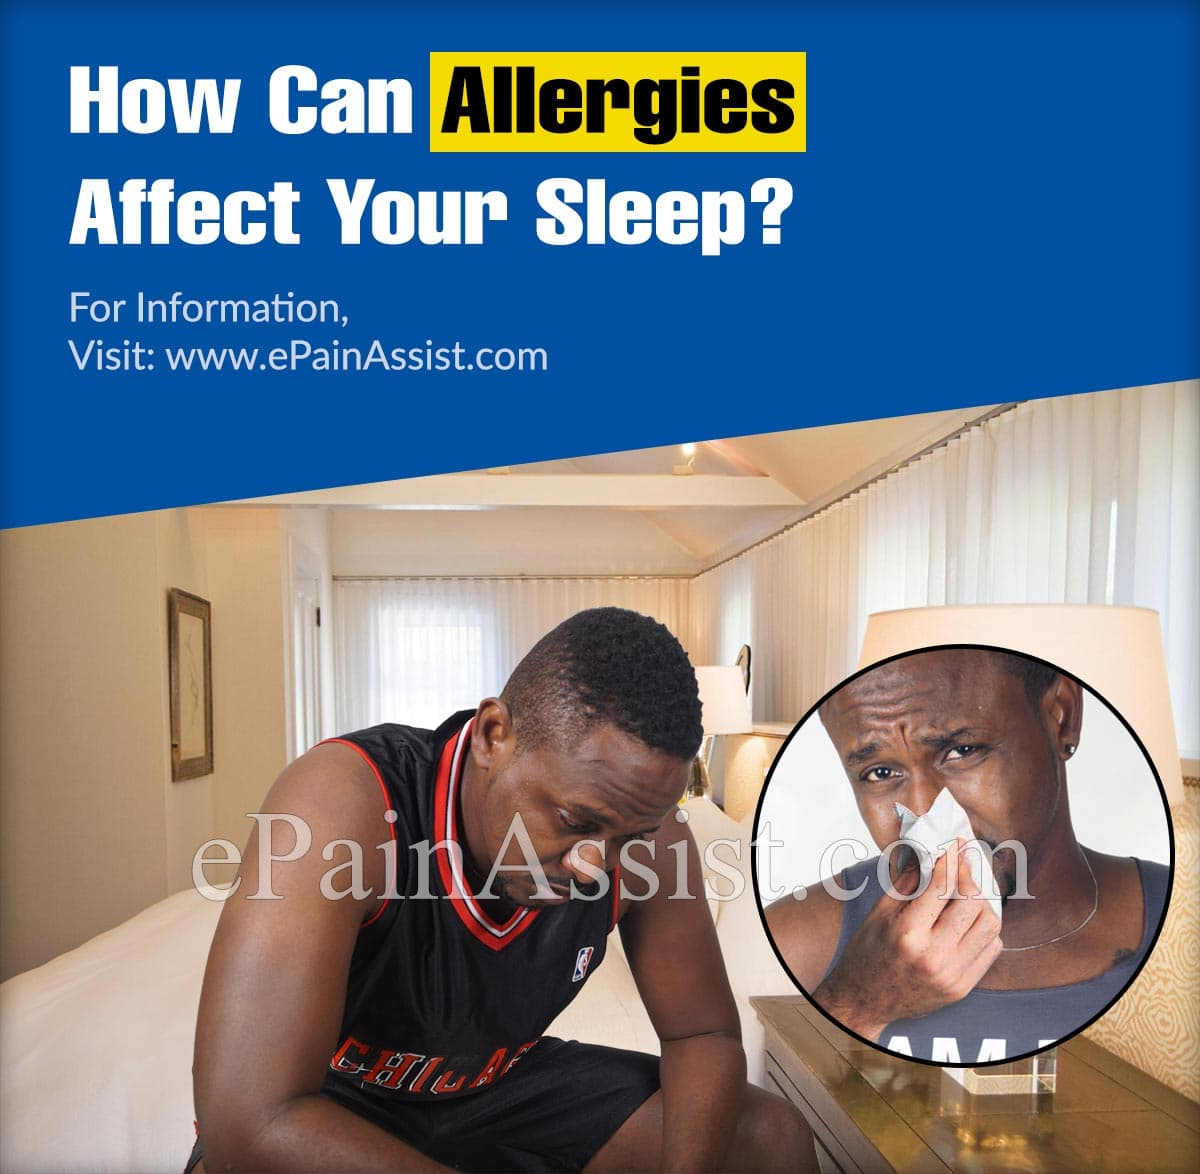 How Can Allergies Affect Your Sleep?